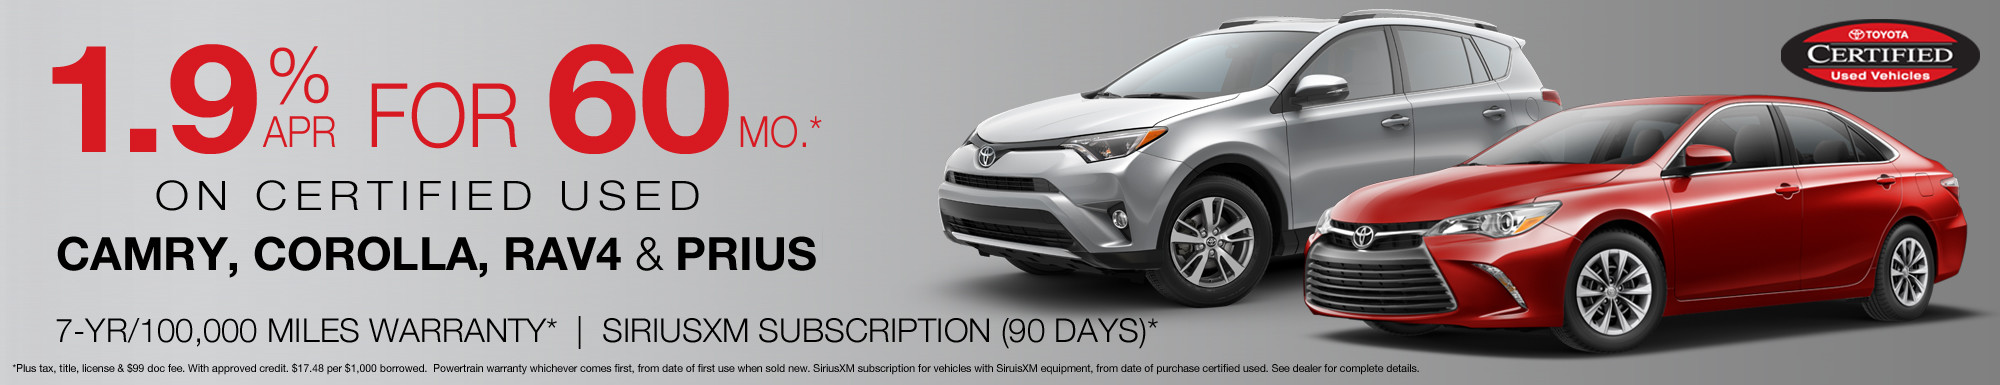 Toyota Certified Used Vehicle Special Financing